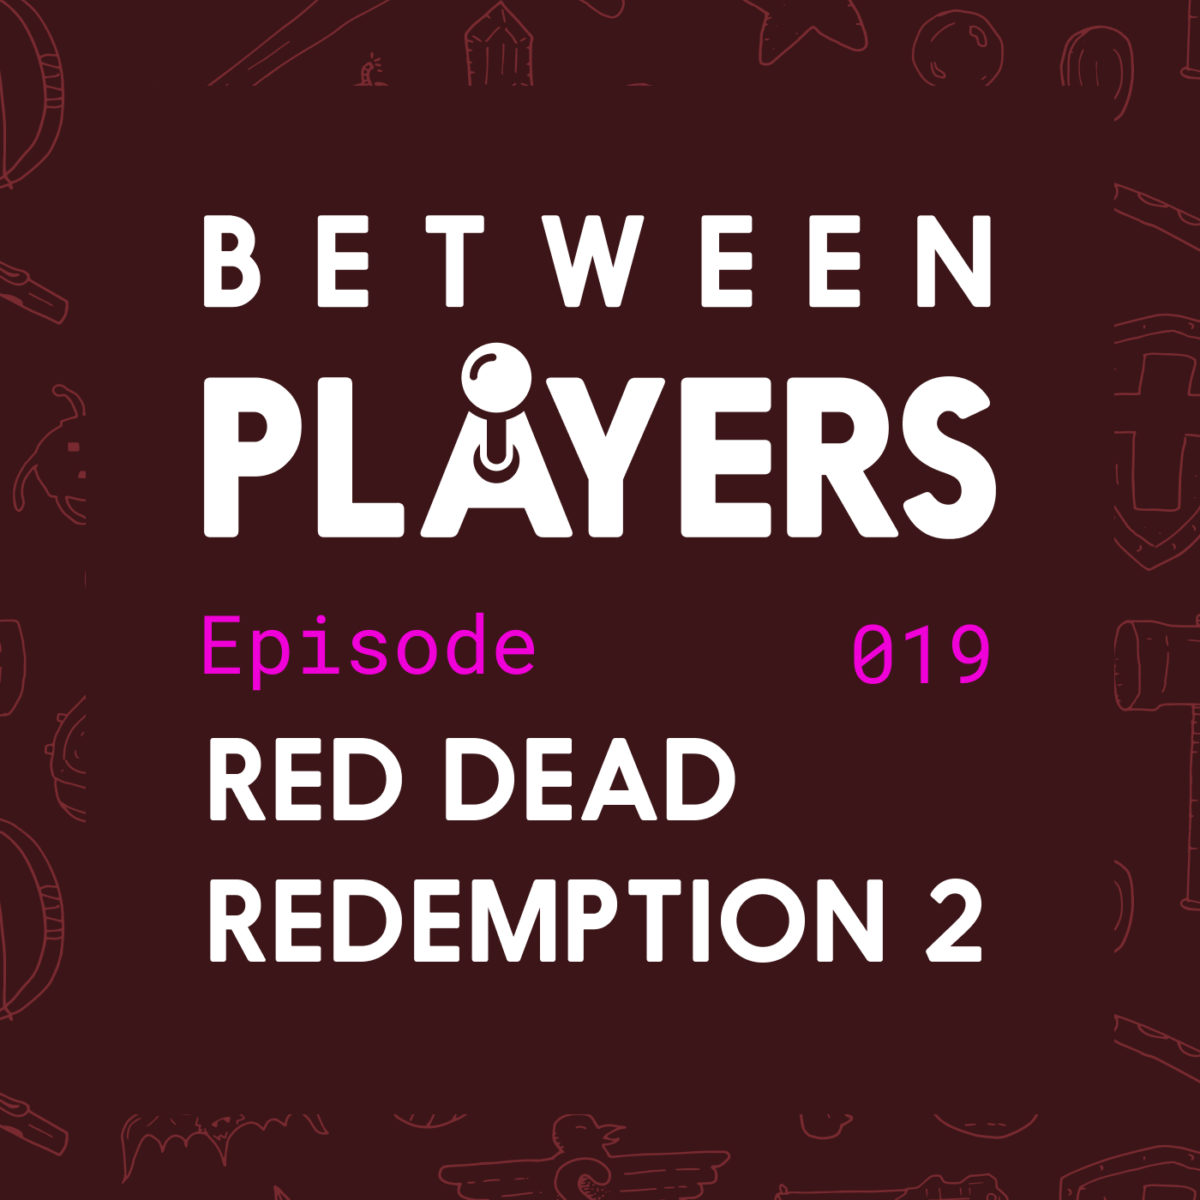 Between Players Episode 19 - Red Dead Redemption Review Art